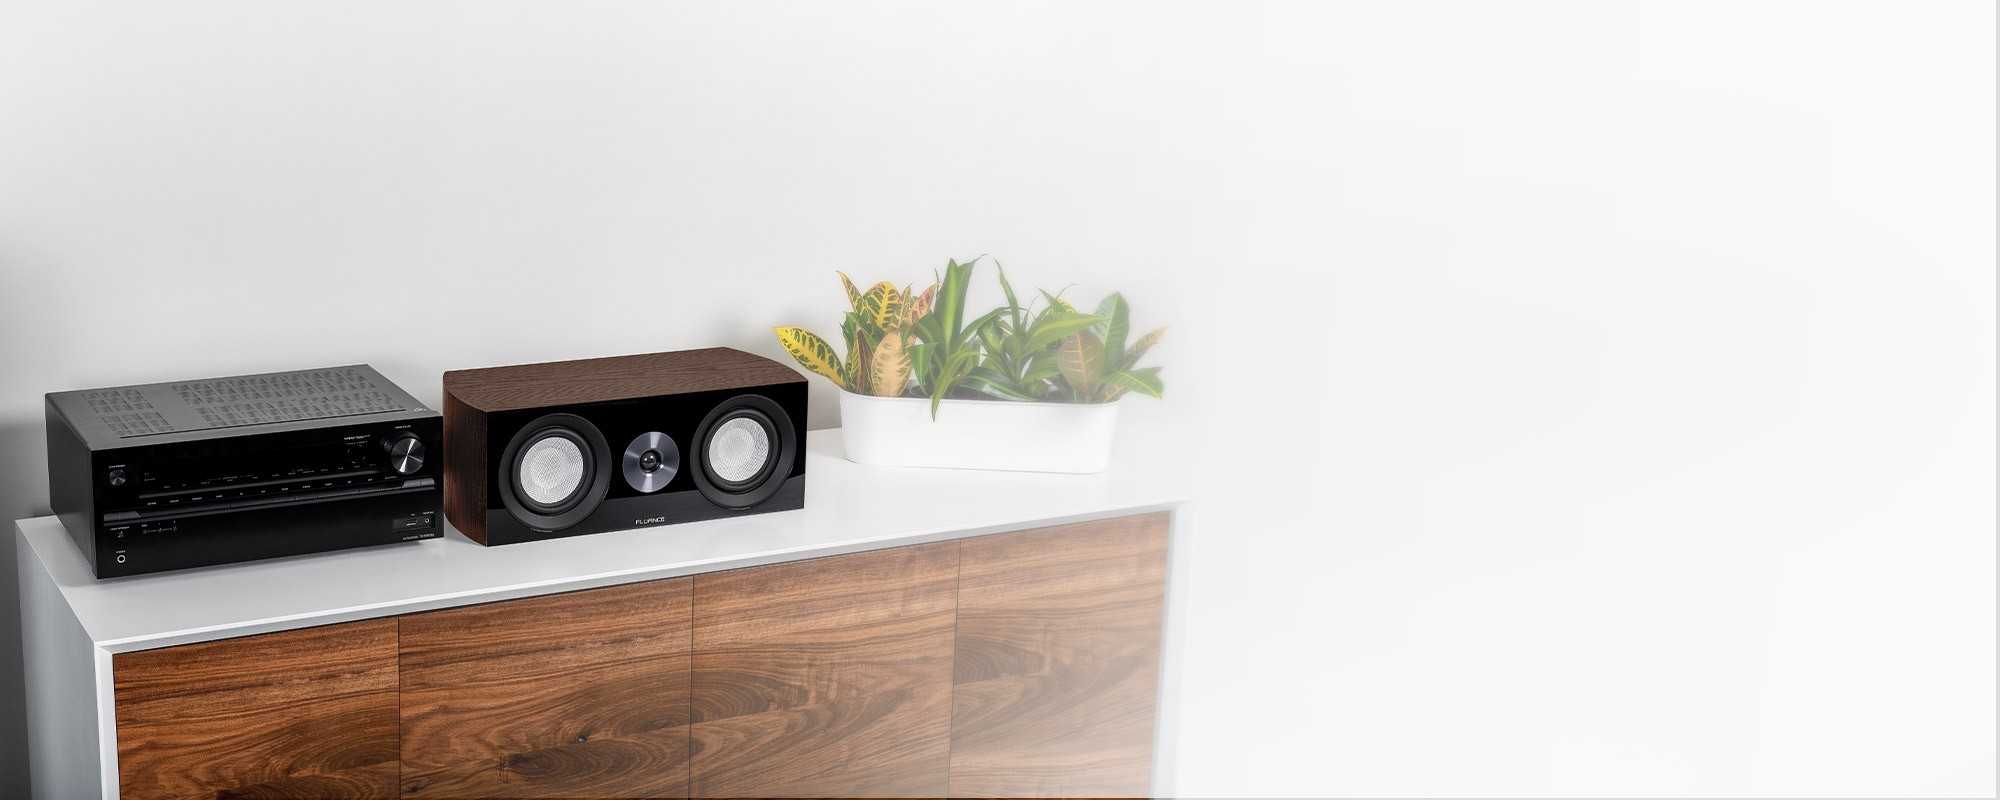 XL8CW Center Channel Speaker with Receiver and plant